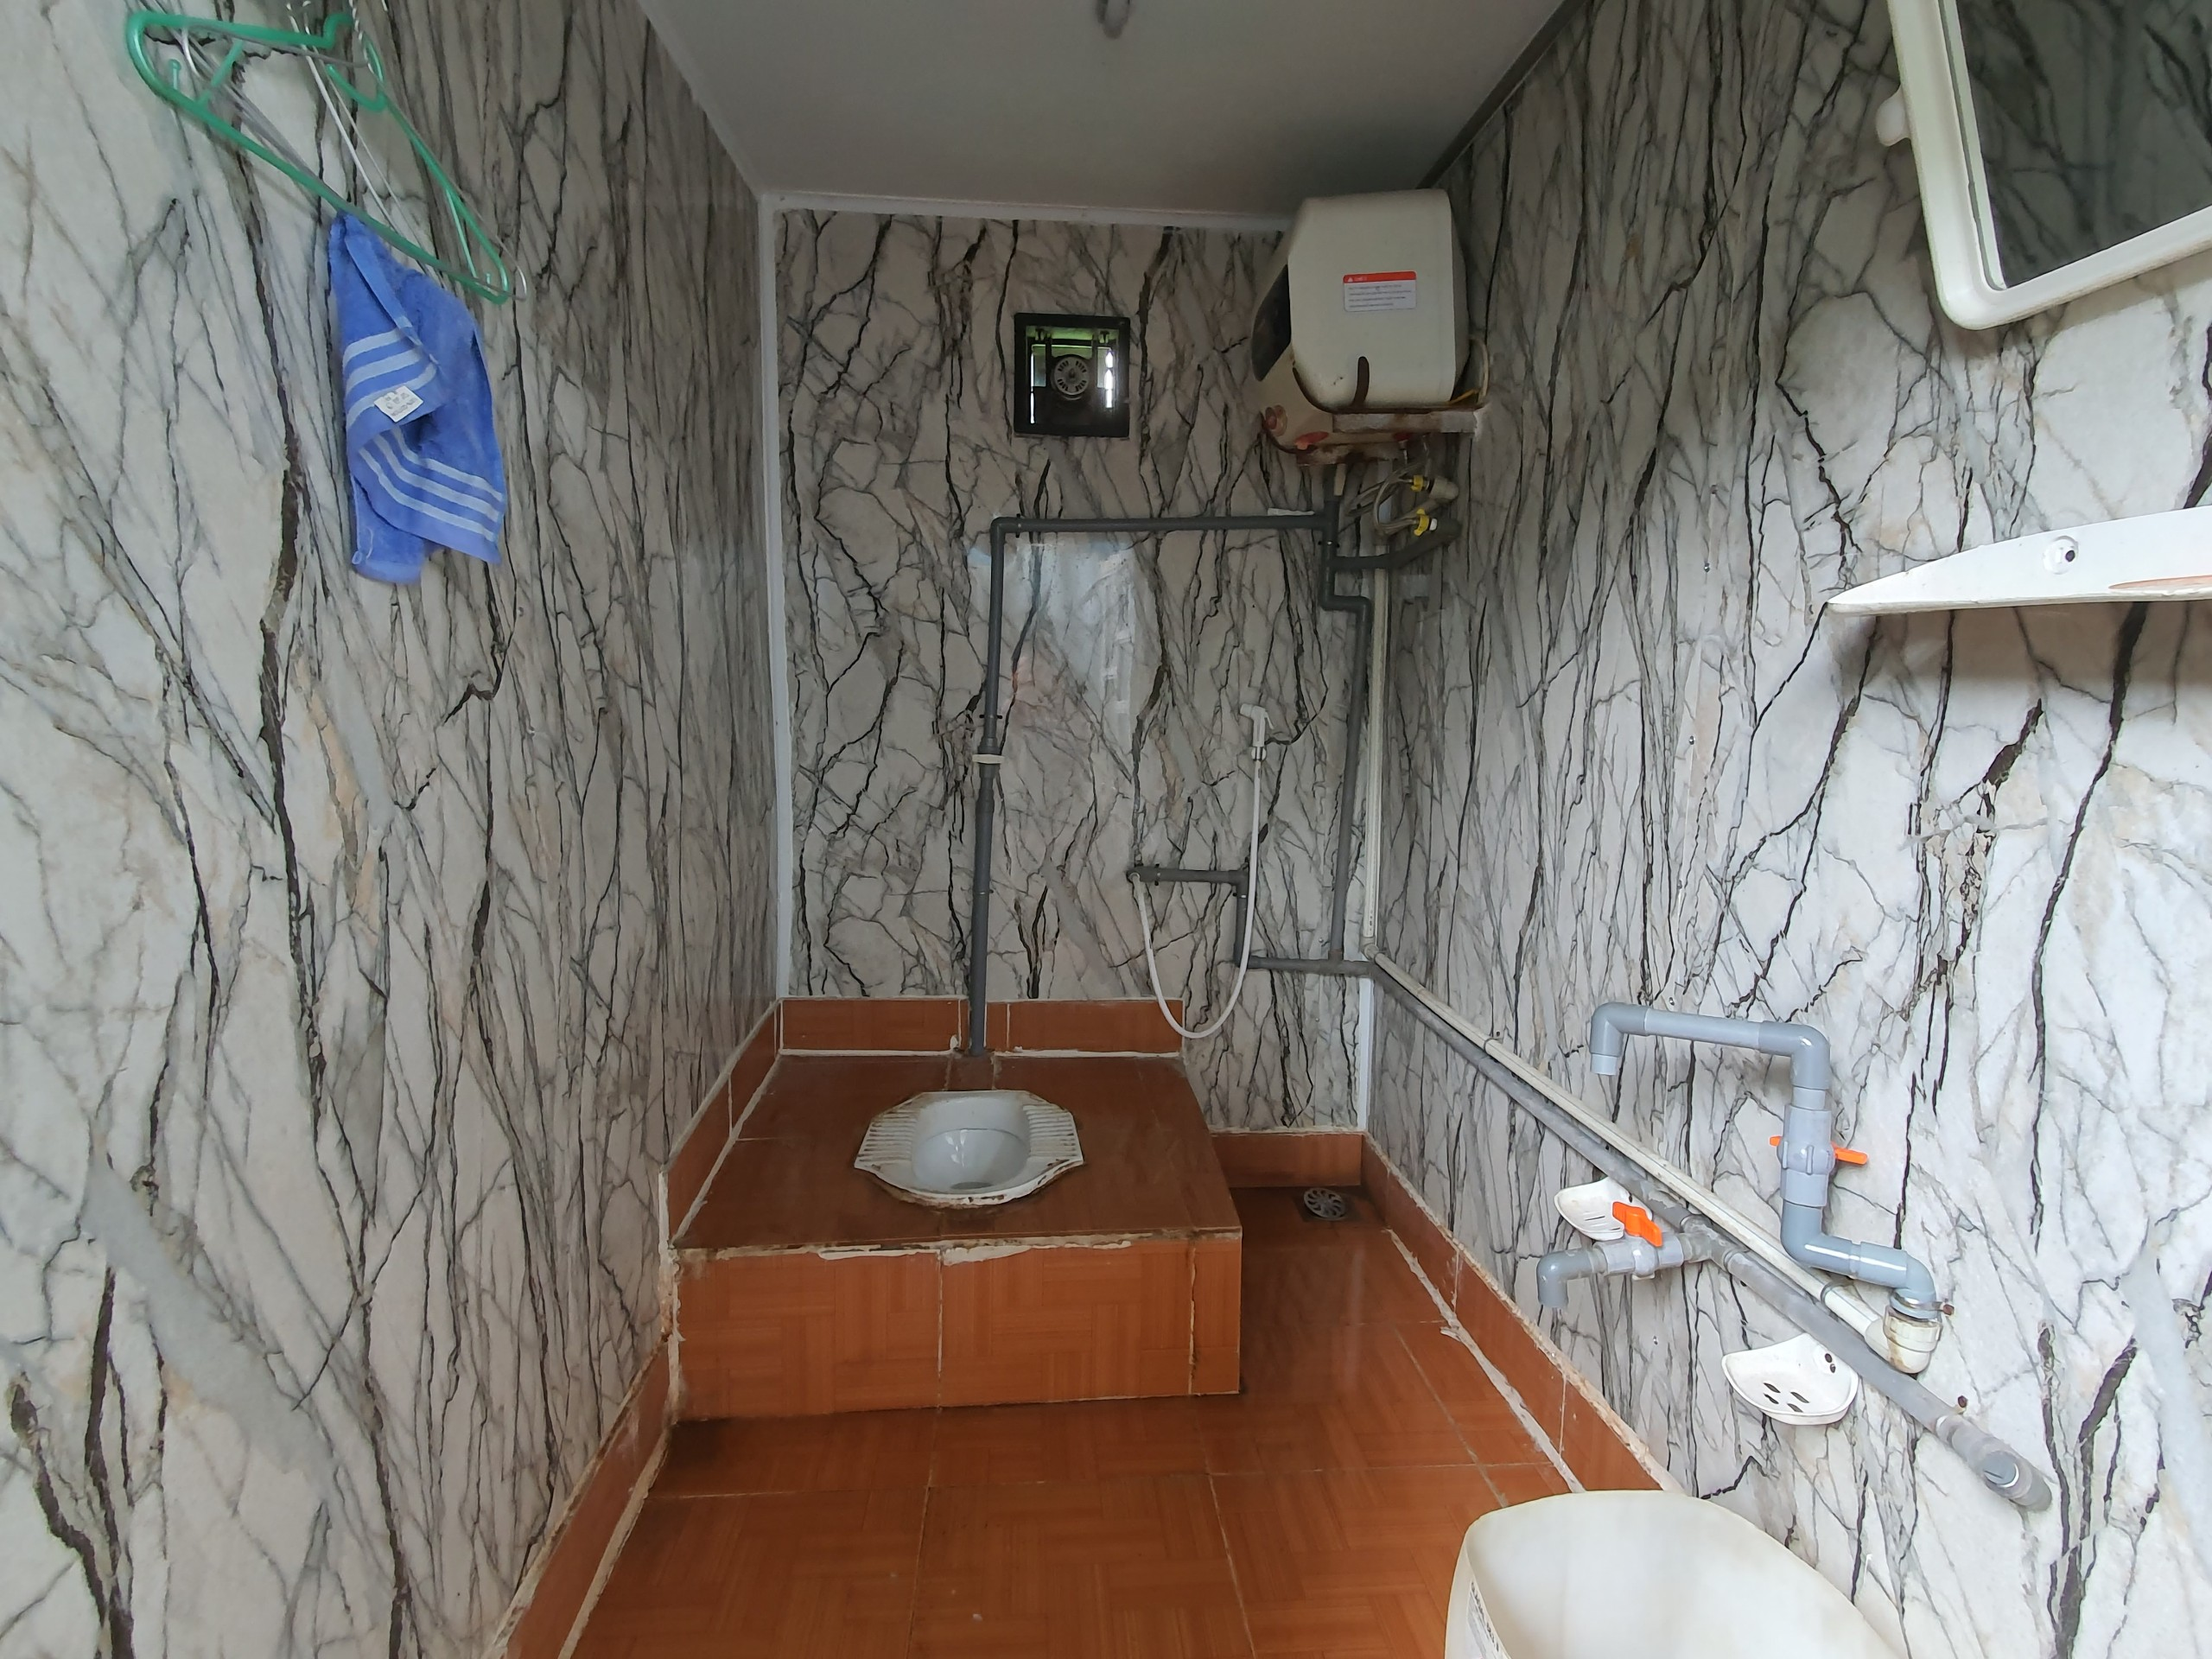 Container Vệ Sinh (TOILET)